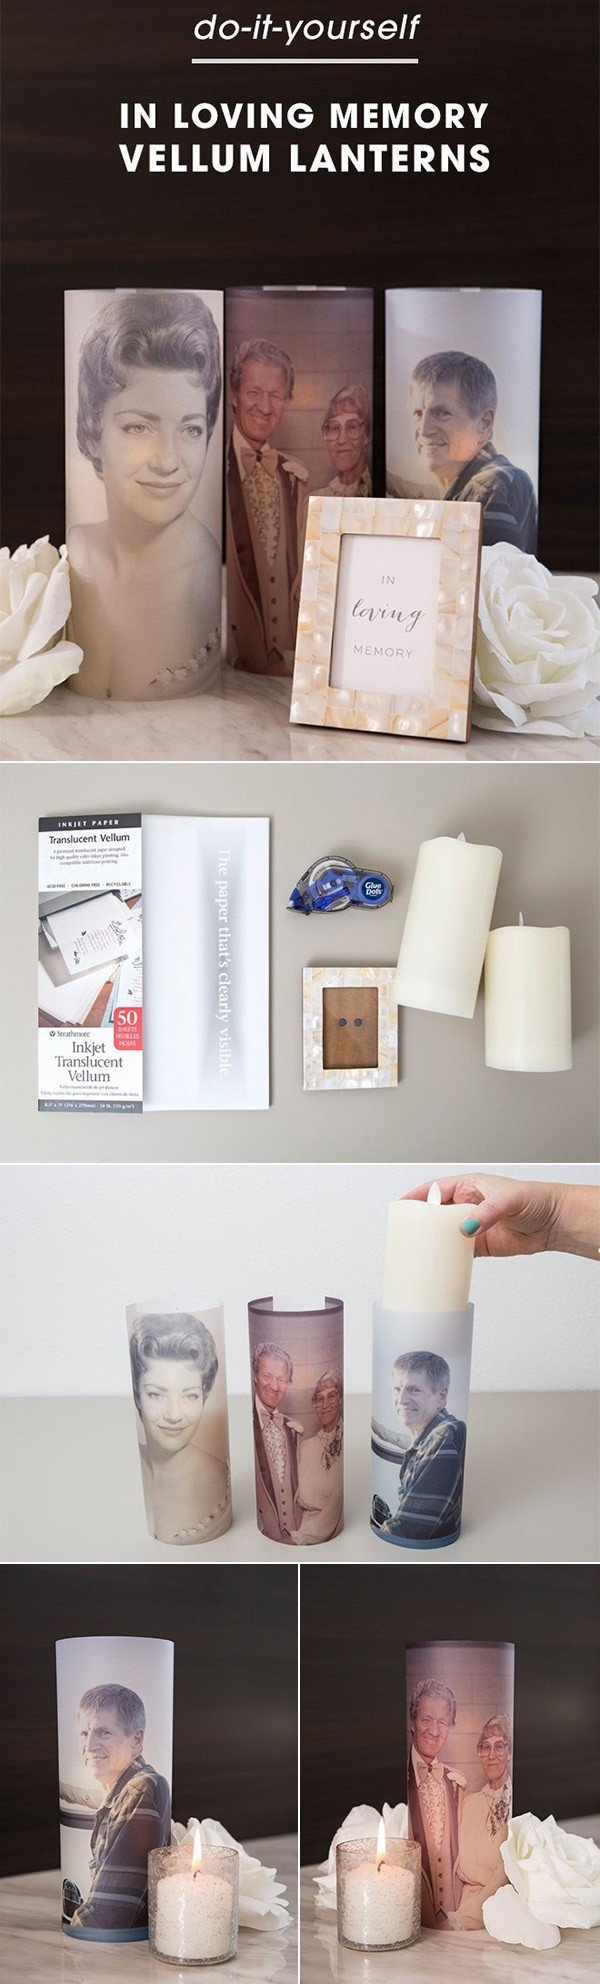 diy in loving memory vellum lanterns for wedding decorations